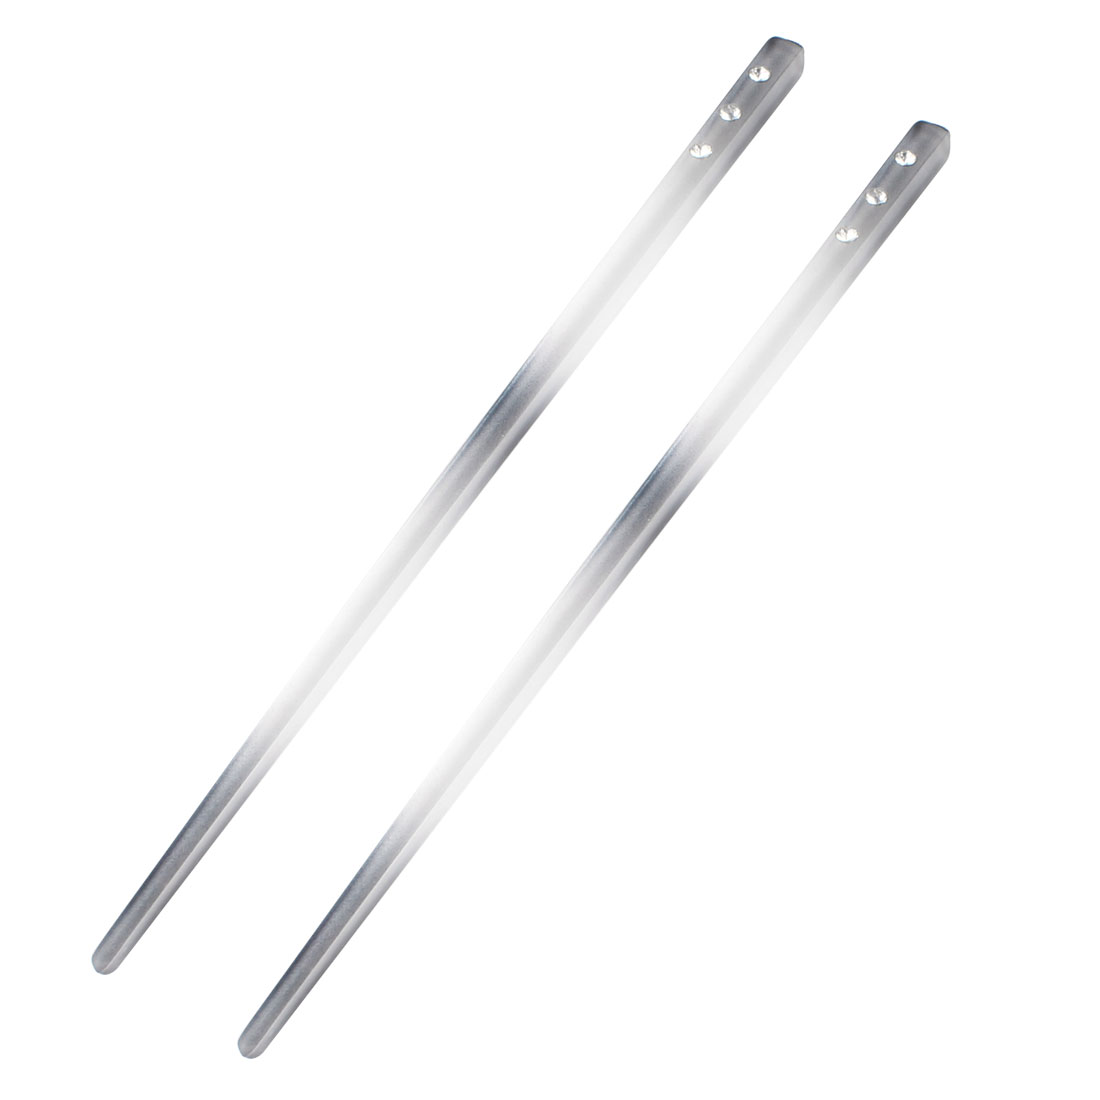 2 Pieces Faux Rhinestone Inlaid Straight Gray Clear Hairstyle Hair Sticks